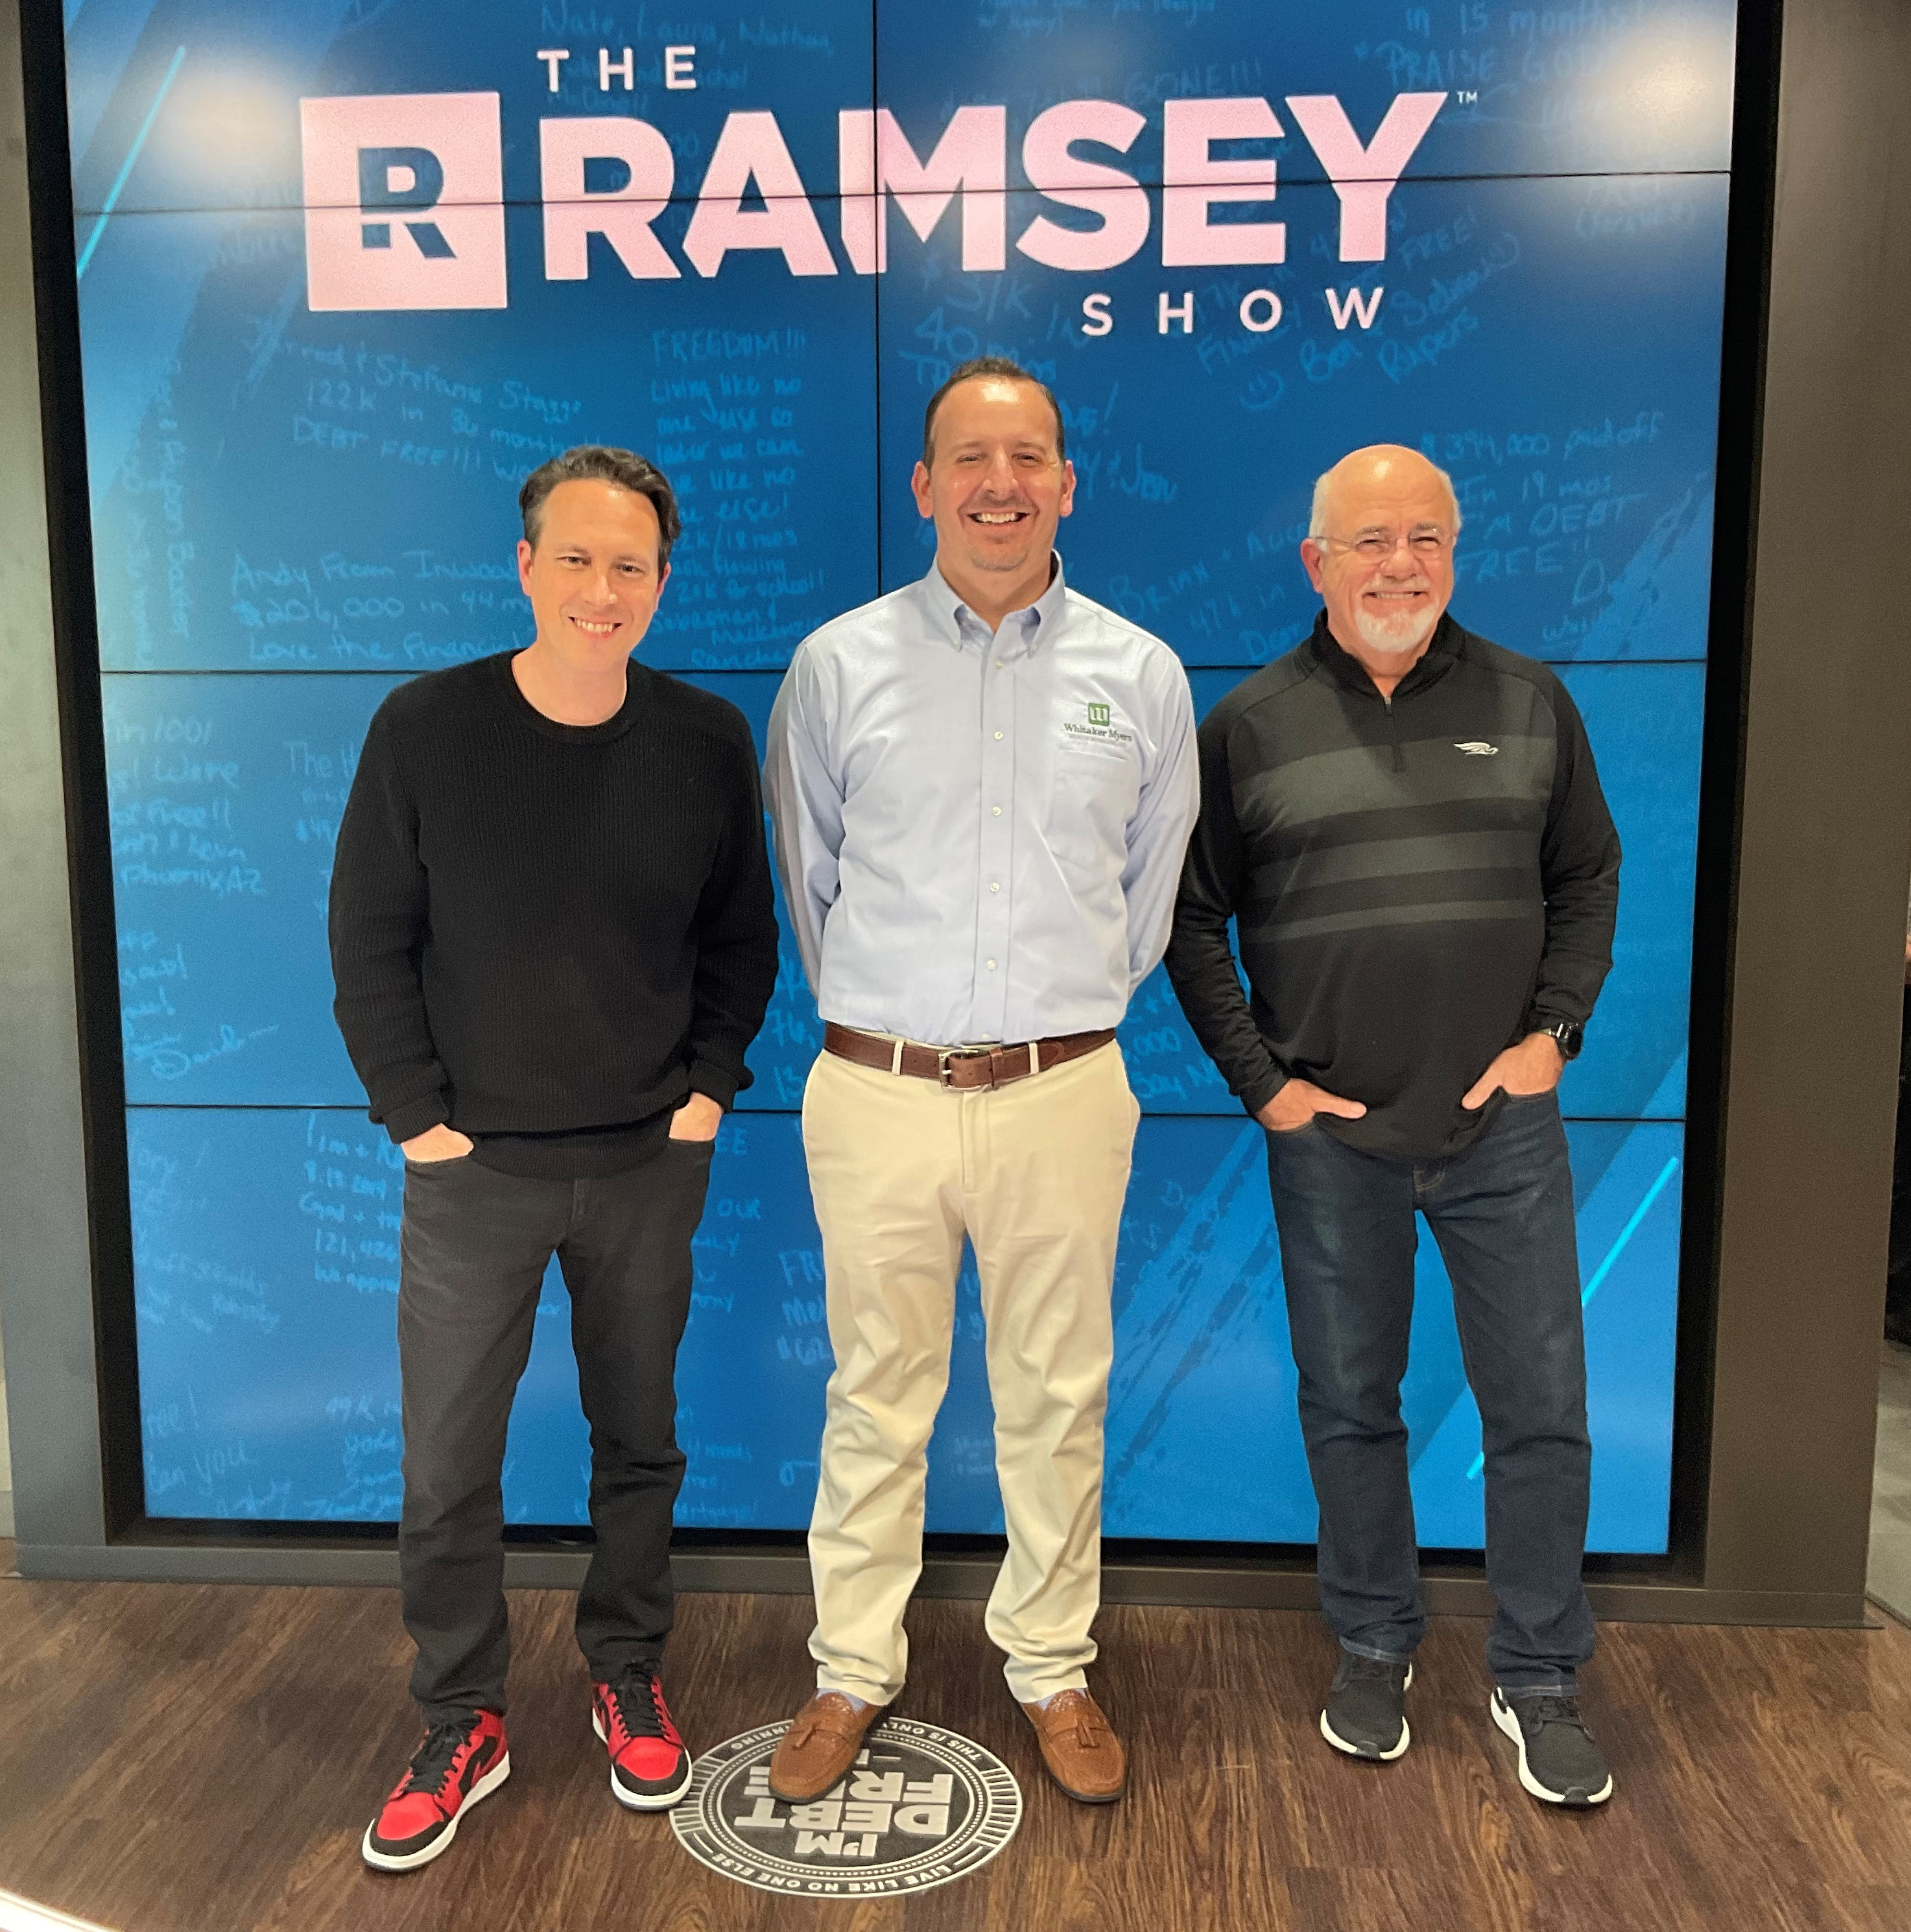 John-mark Young, financial advisor Orrville OH